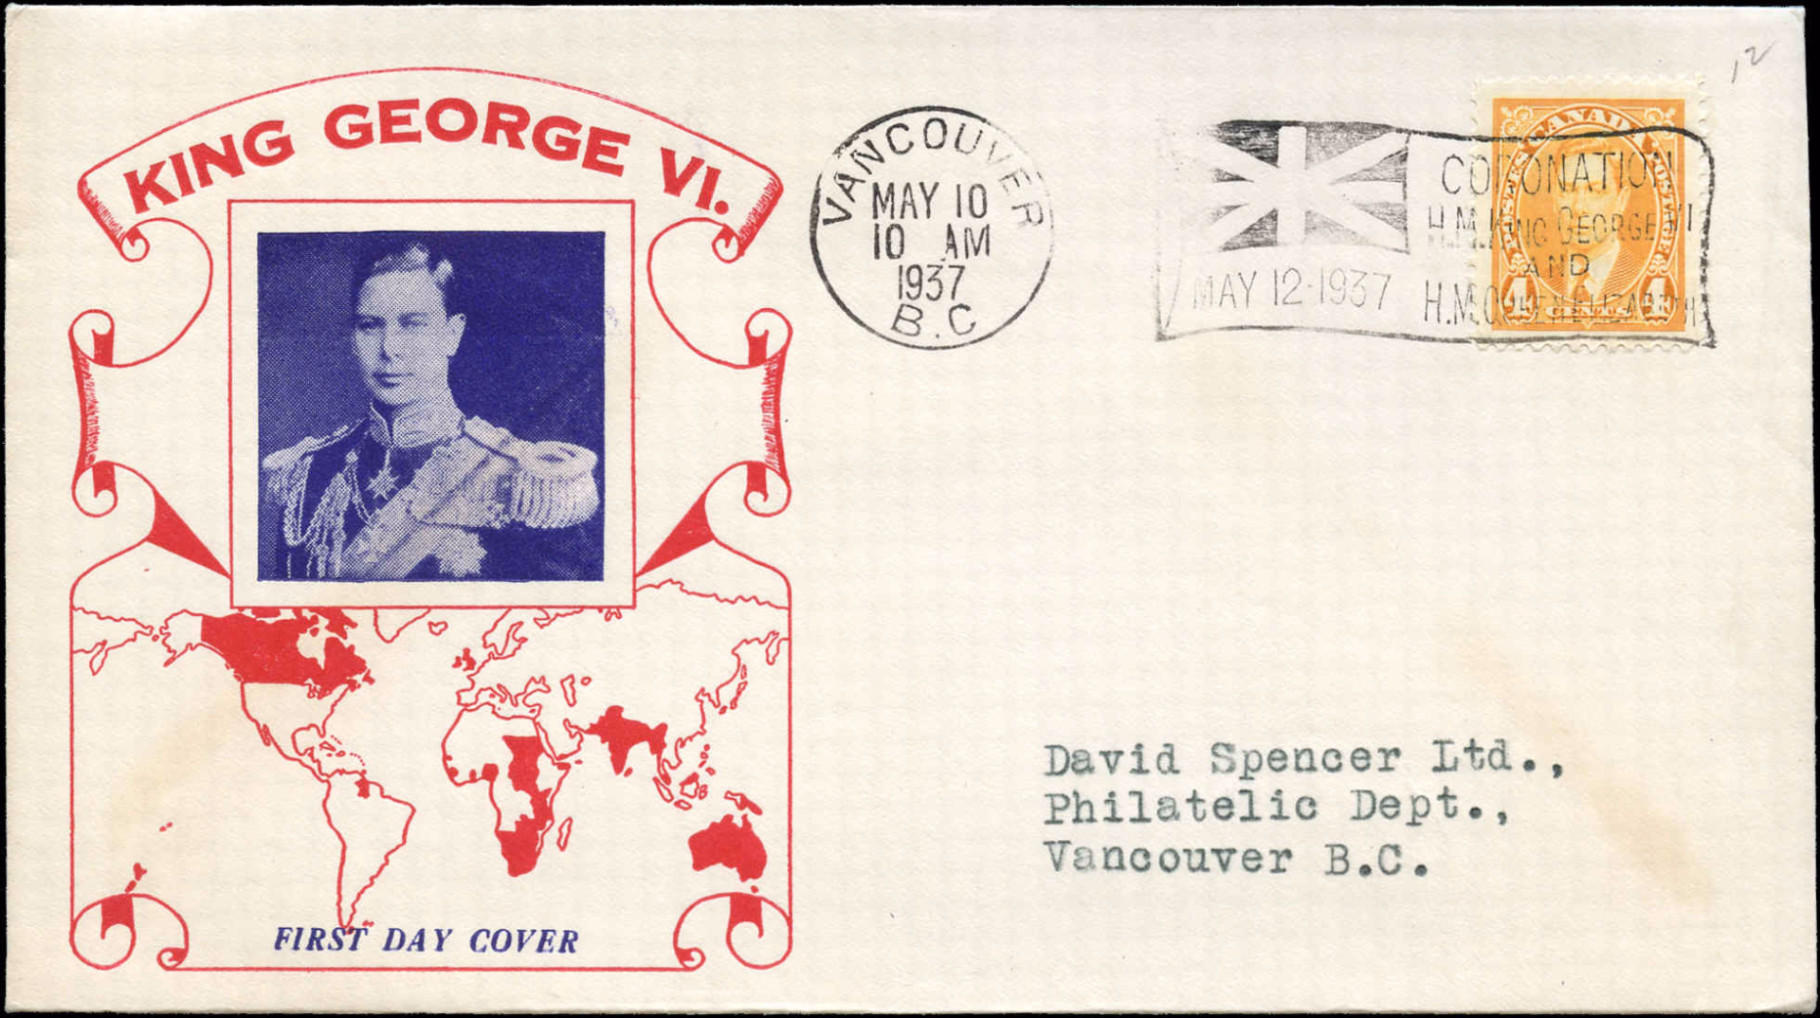 Canada, First Day Cover, May 10, 1937